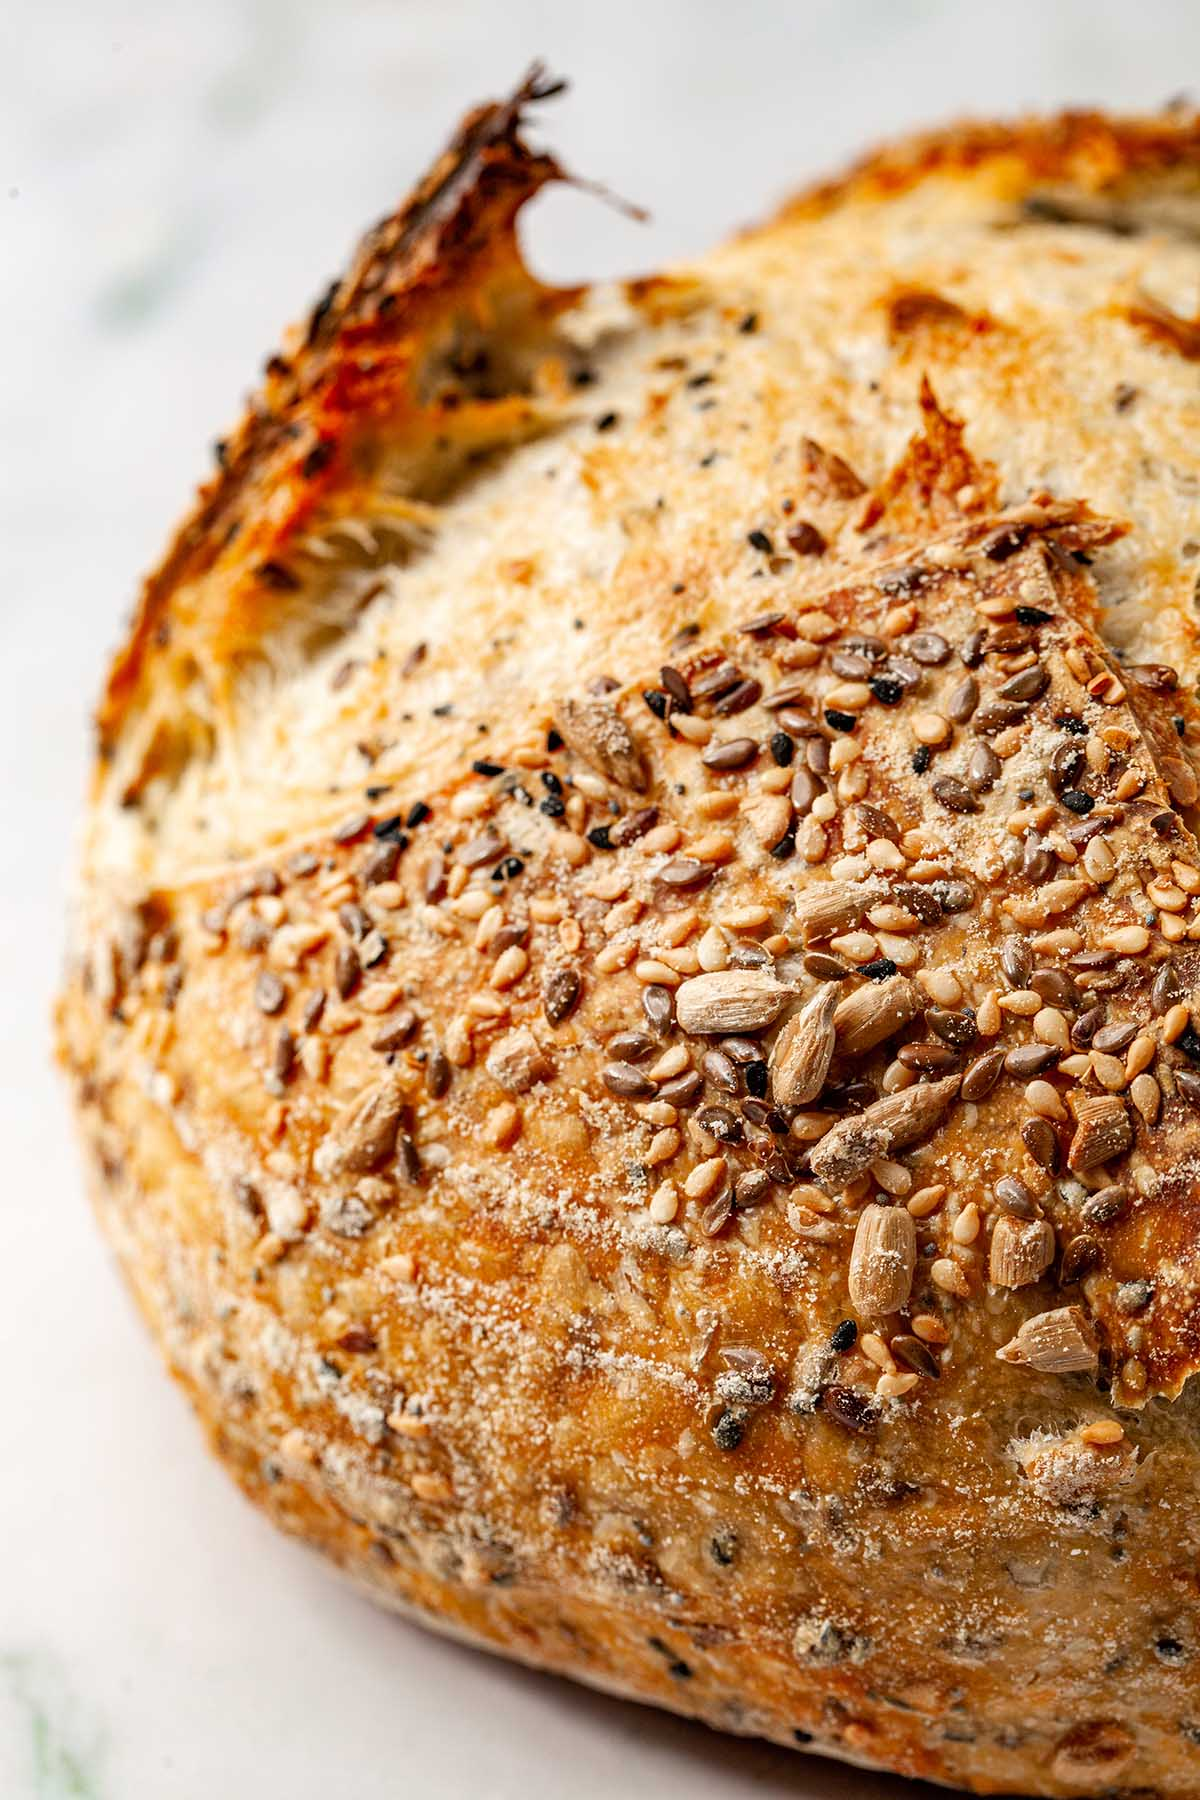 A close up of a seedy sourdough bread.